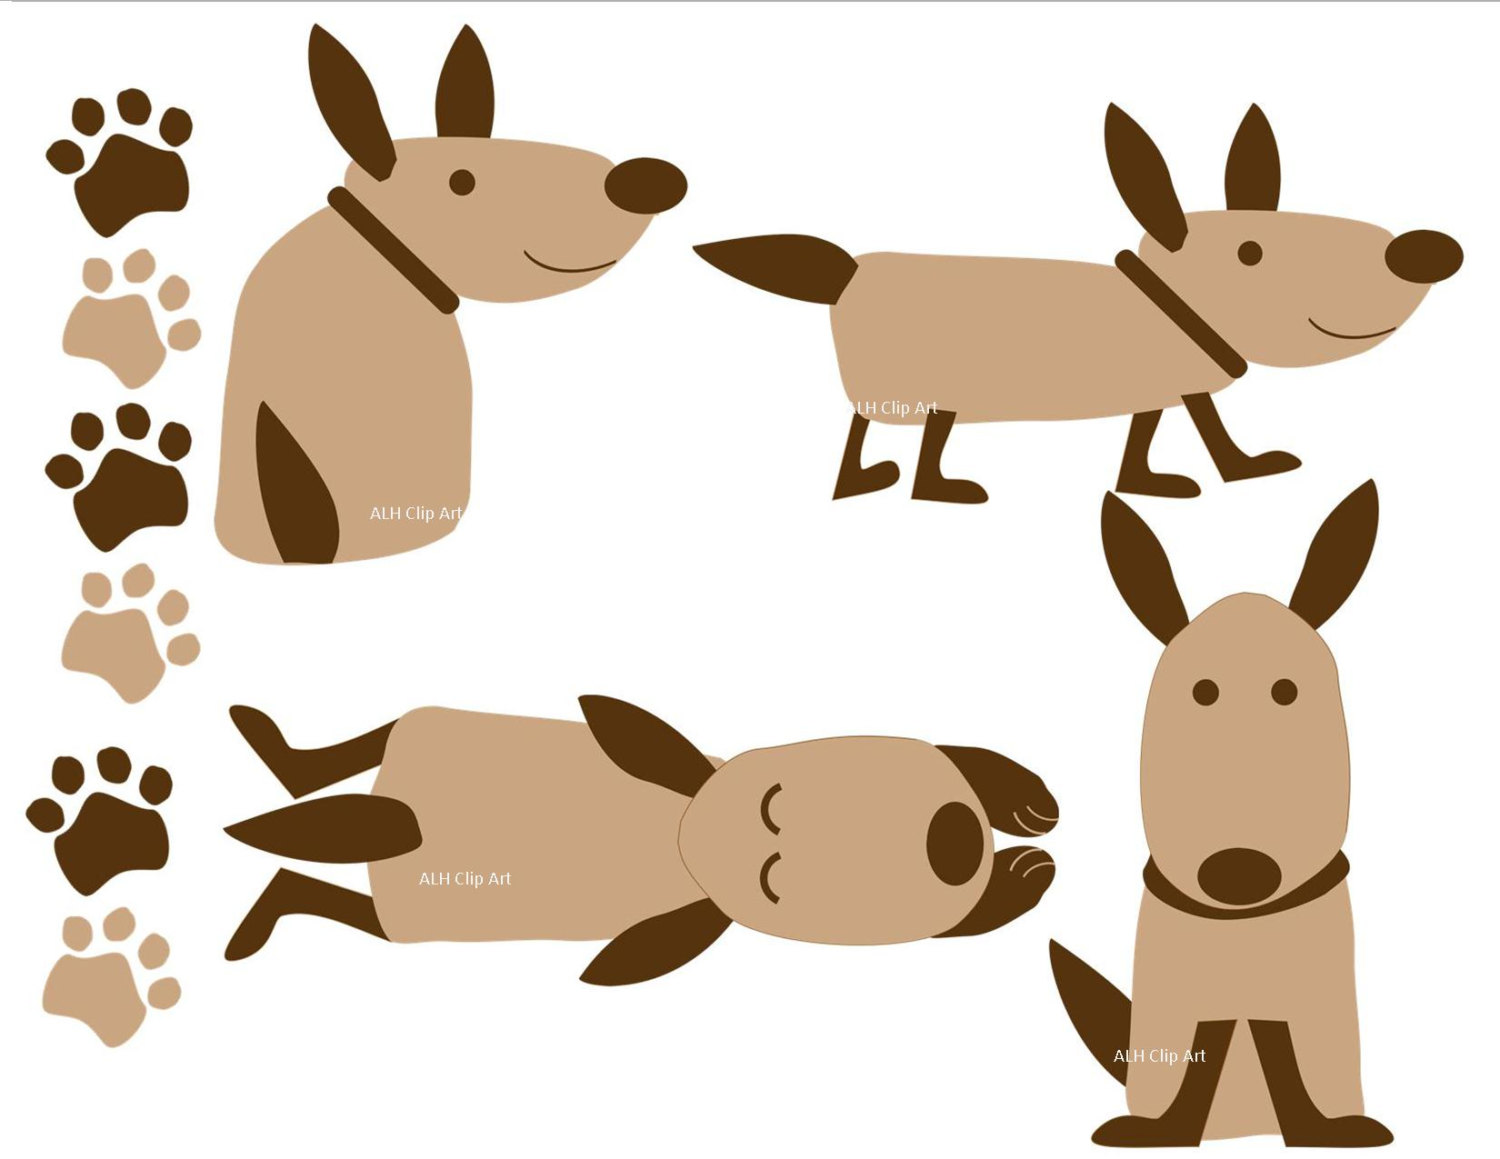 dog in doghouse clipart - photo #42